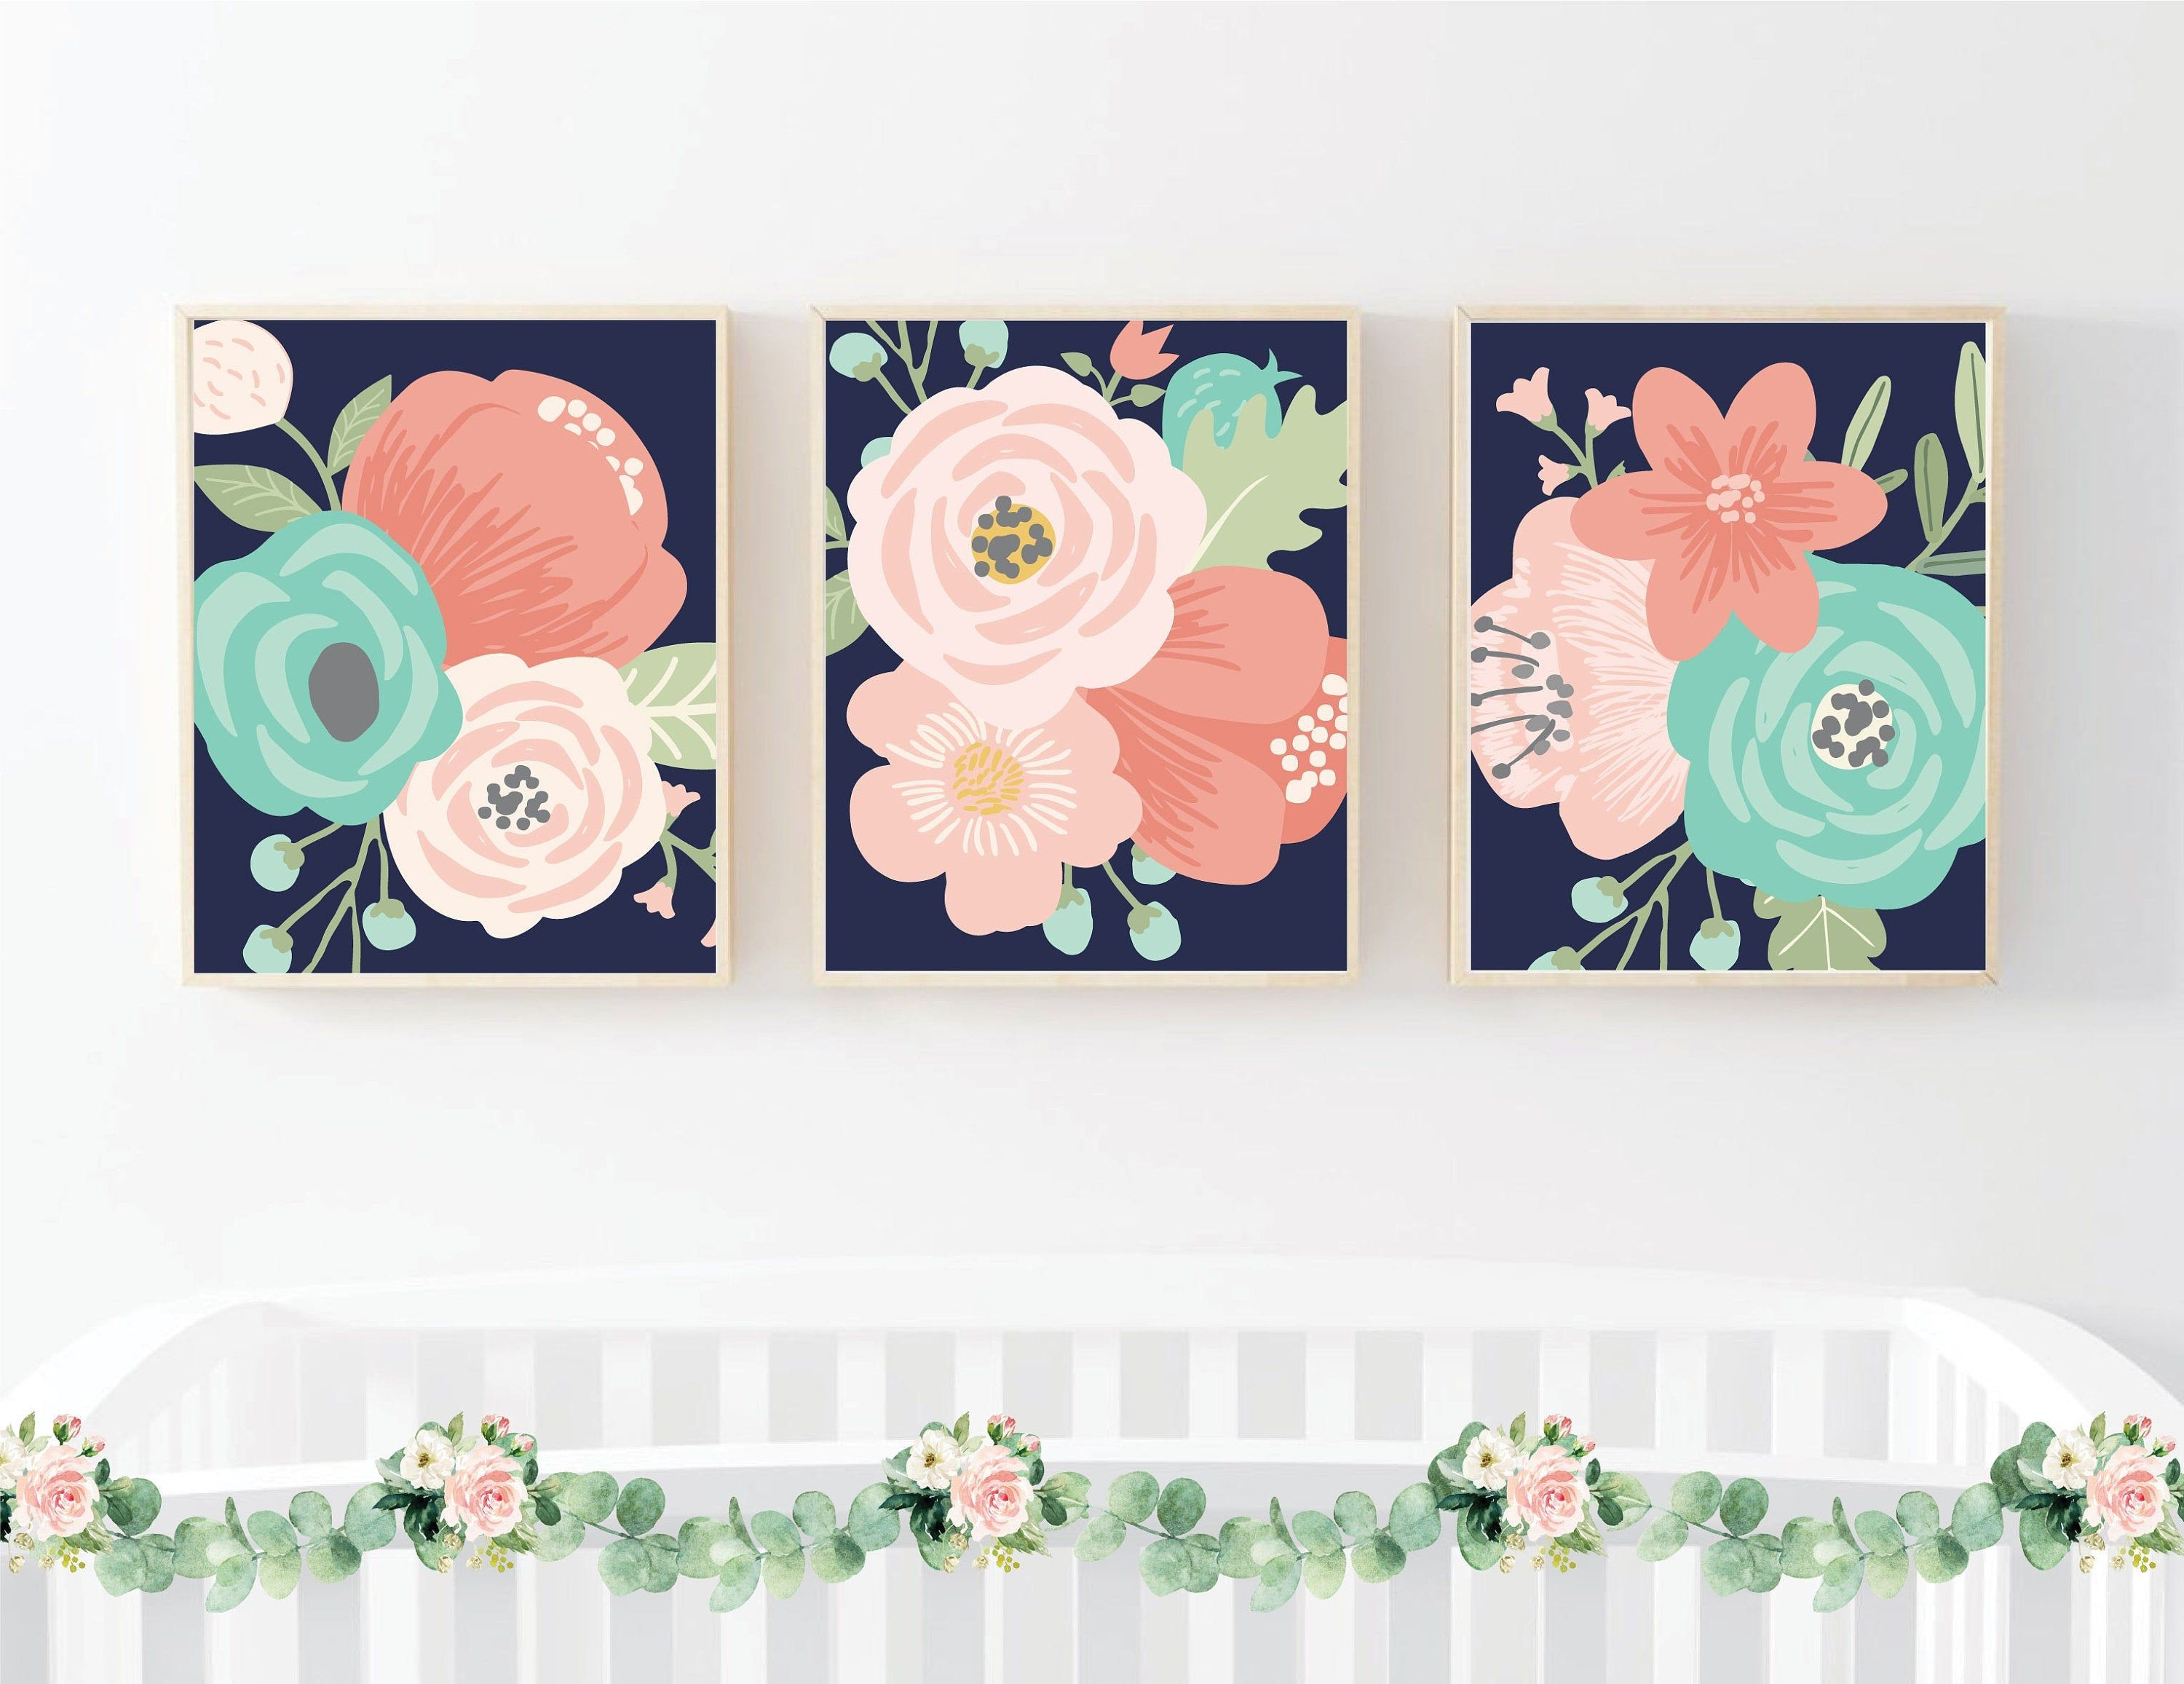 Navy Coral Aqua Large Flower Wall Decor Pink Floral Nursery Etsy In 2020 Floral Nursery Print Floral Nursery Wall Art Pink Floral Nursery